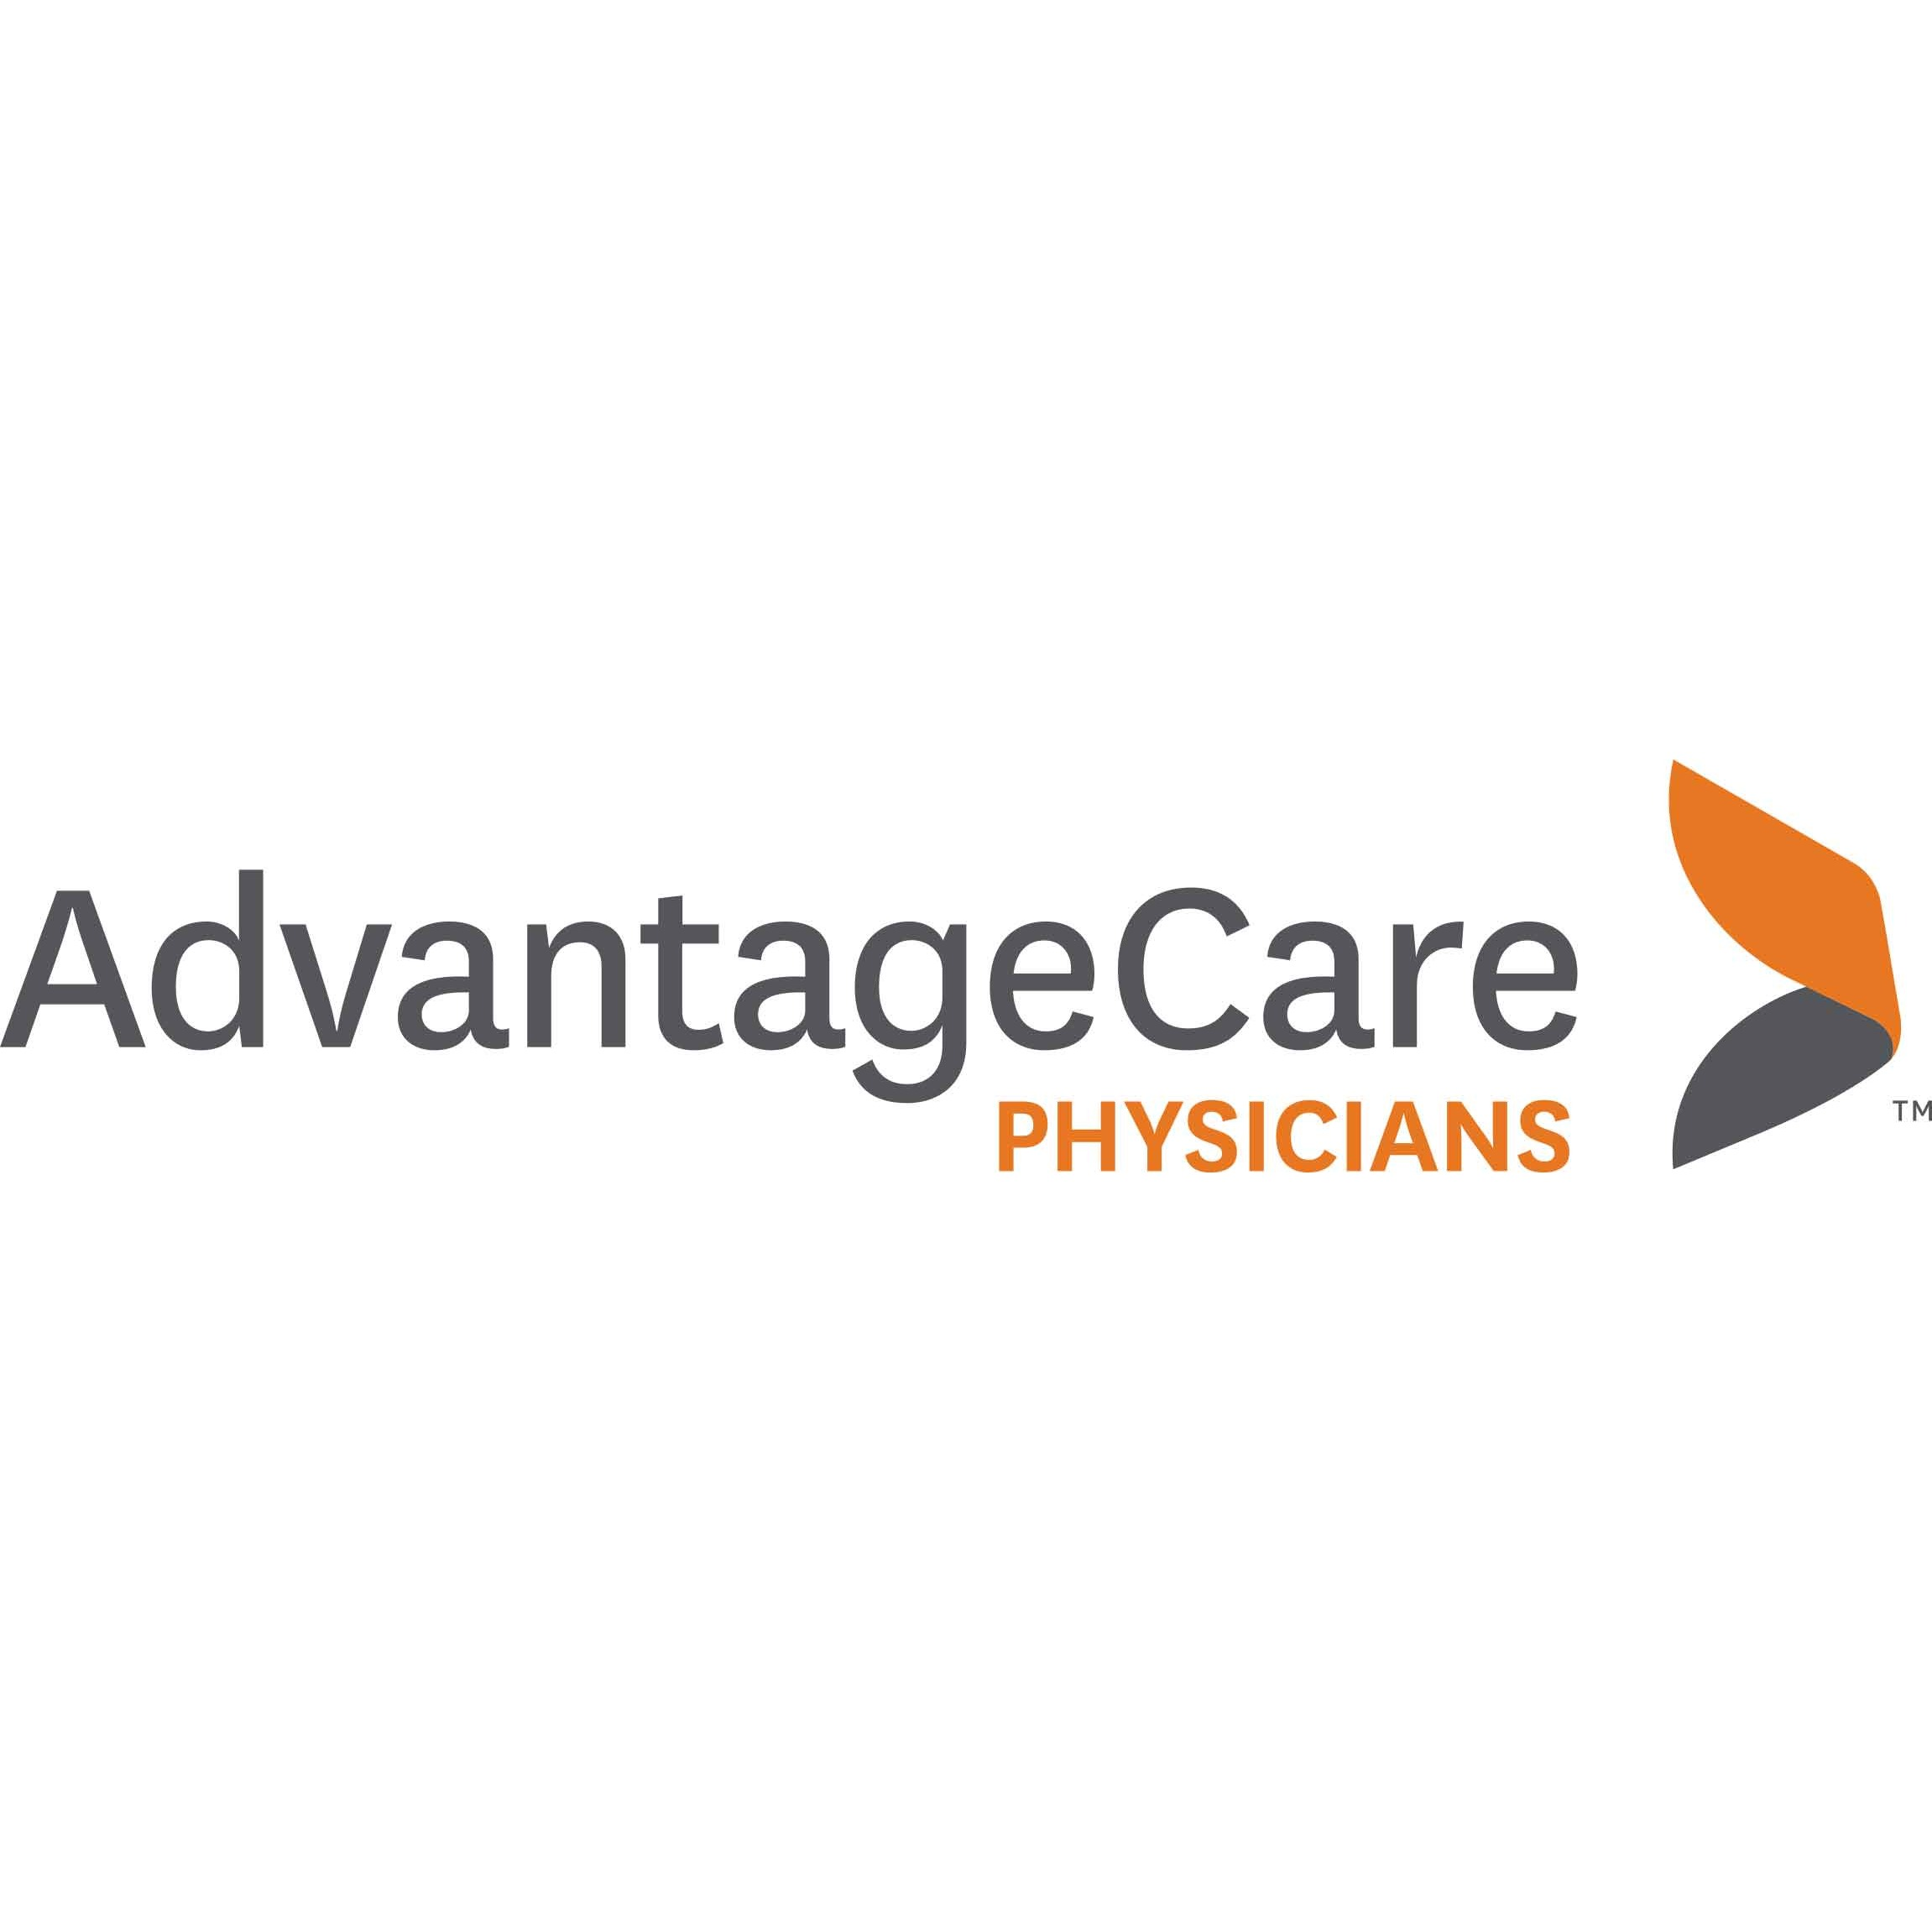 Find a healthcare provider, medical office or service.